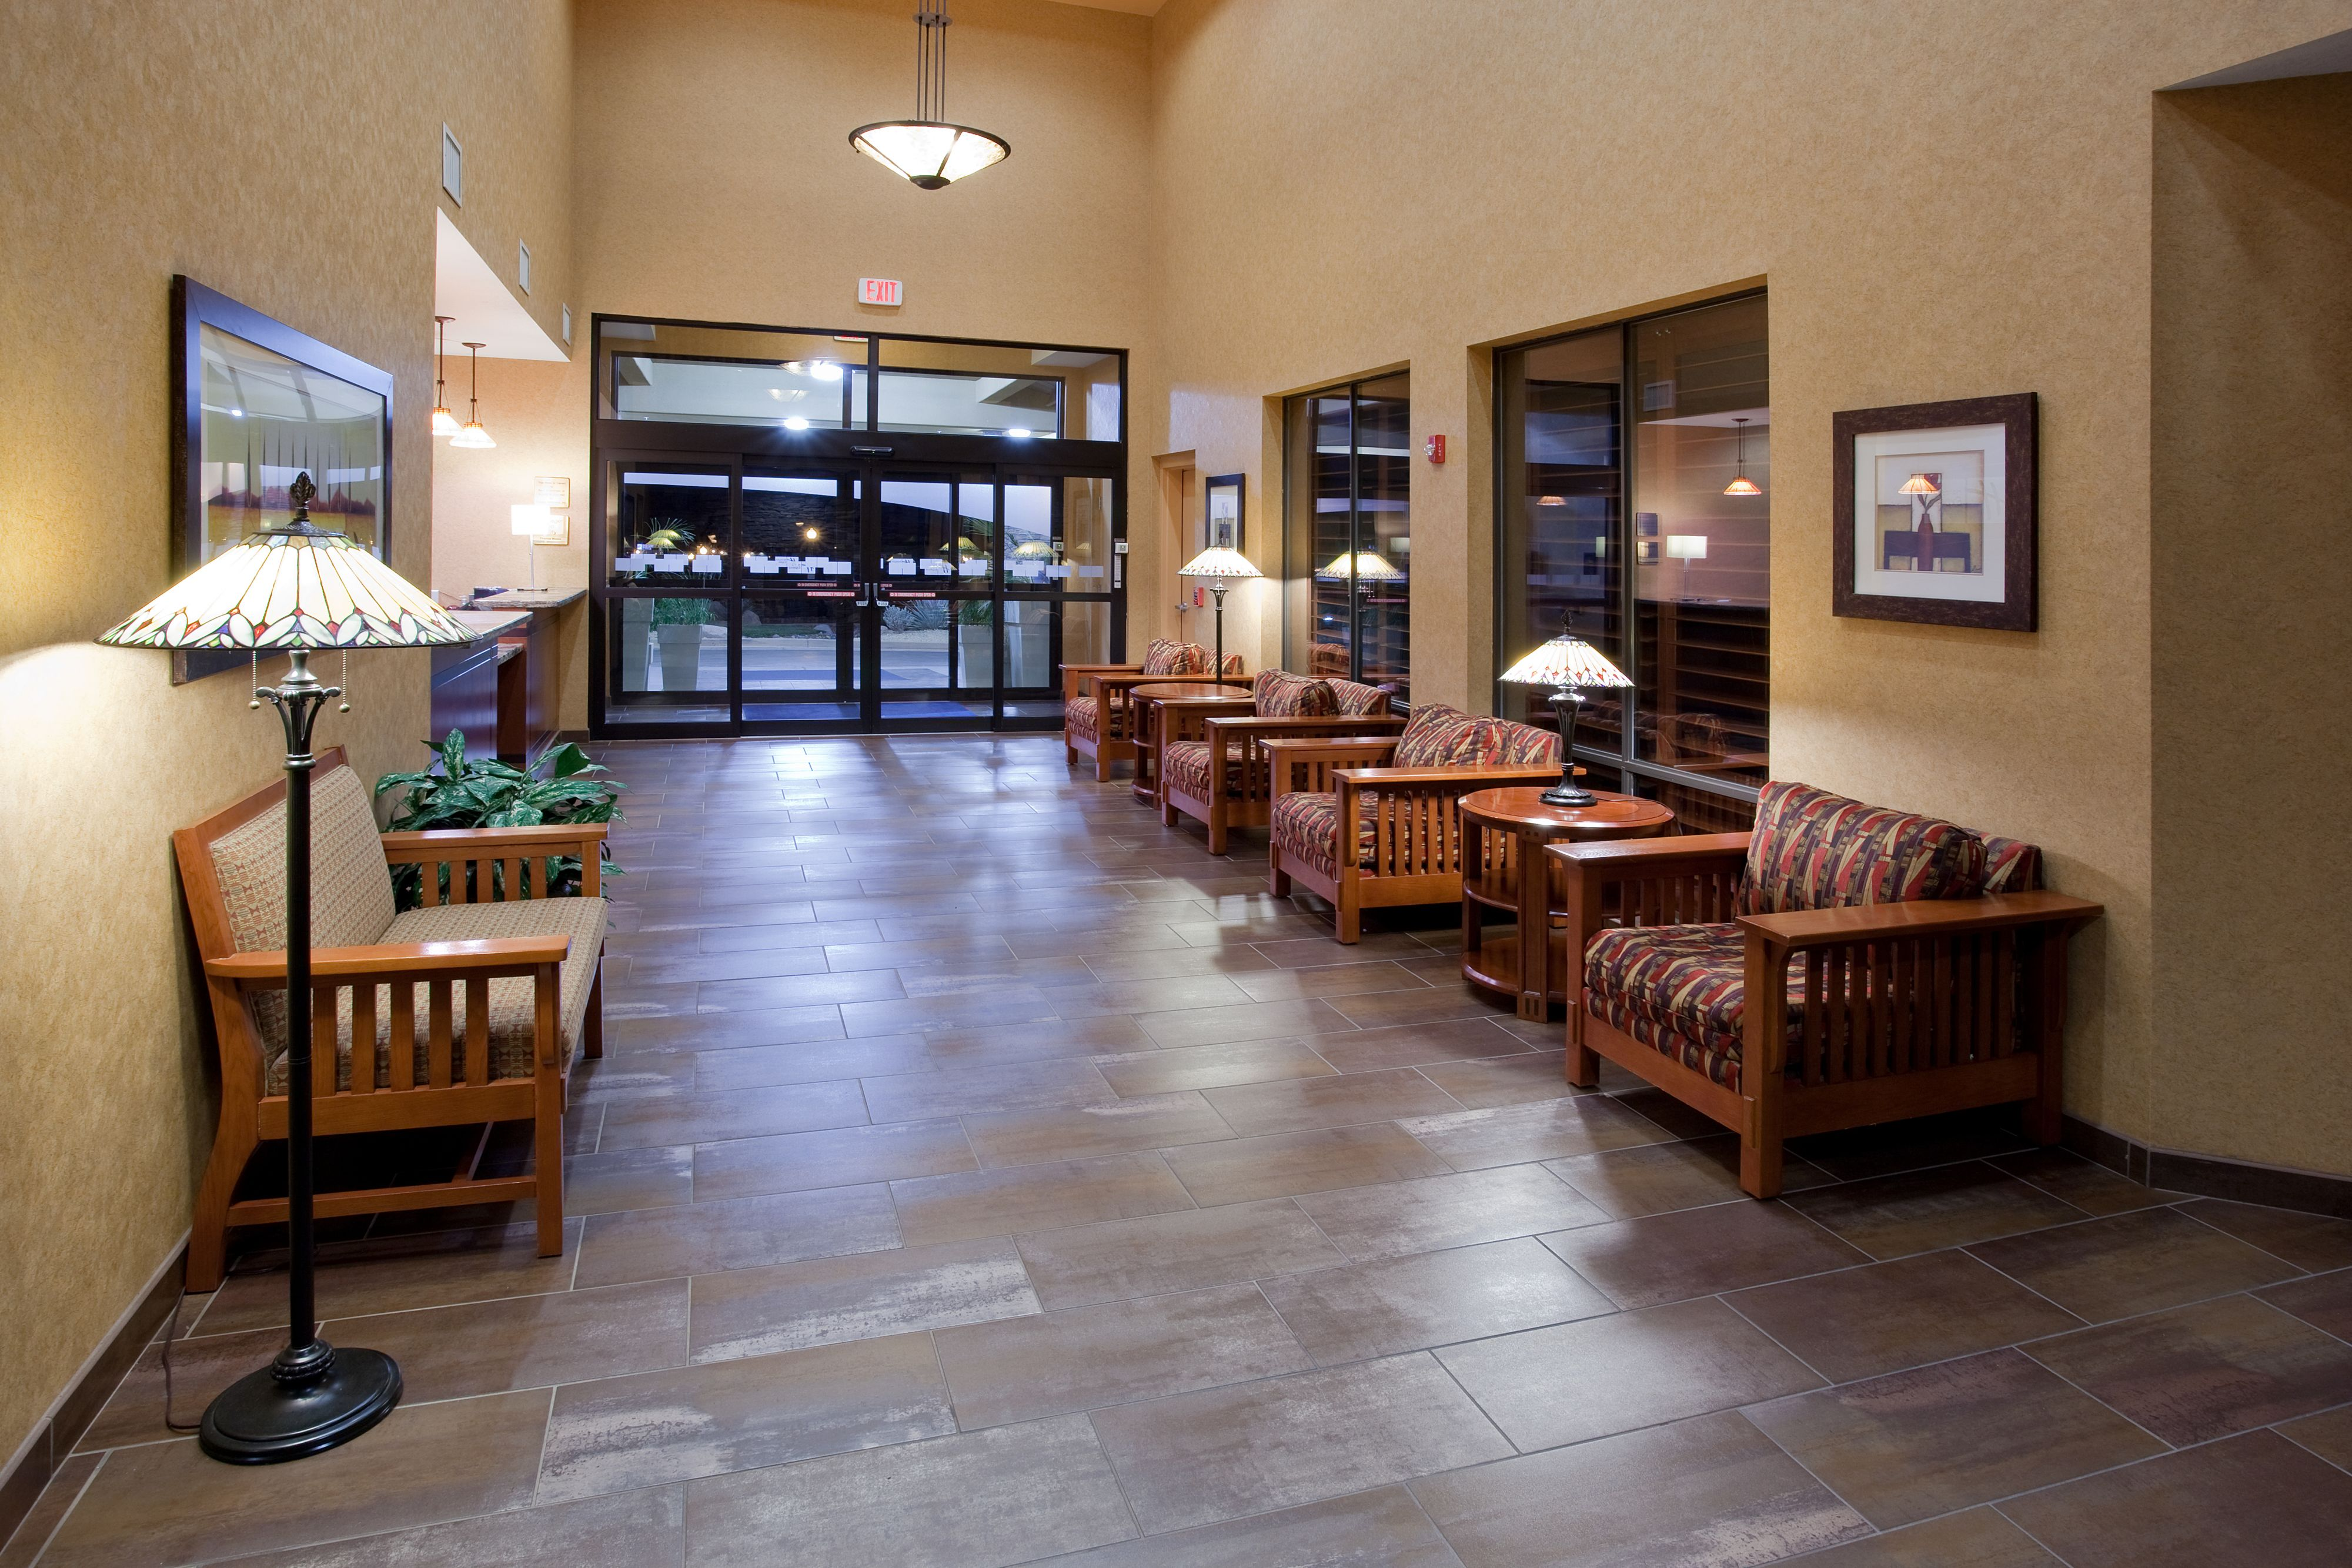 Holiday Inn Express & Suites St. George North - Zion image 5